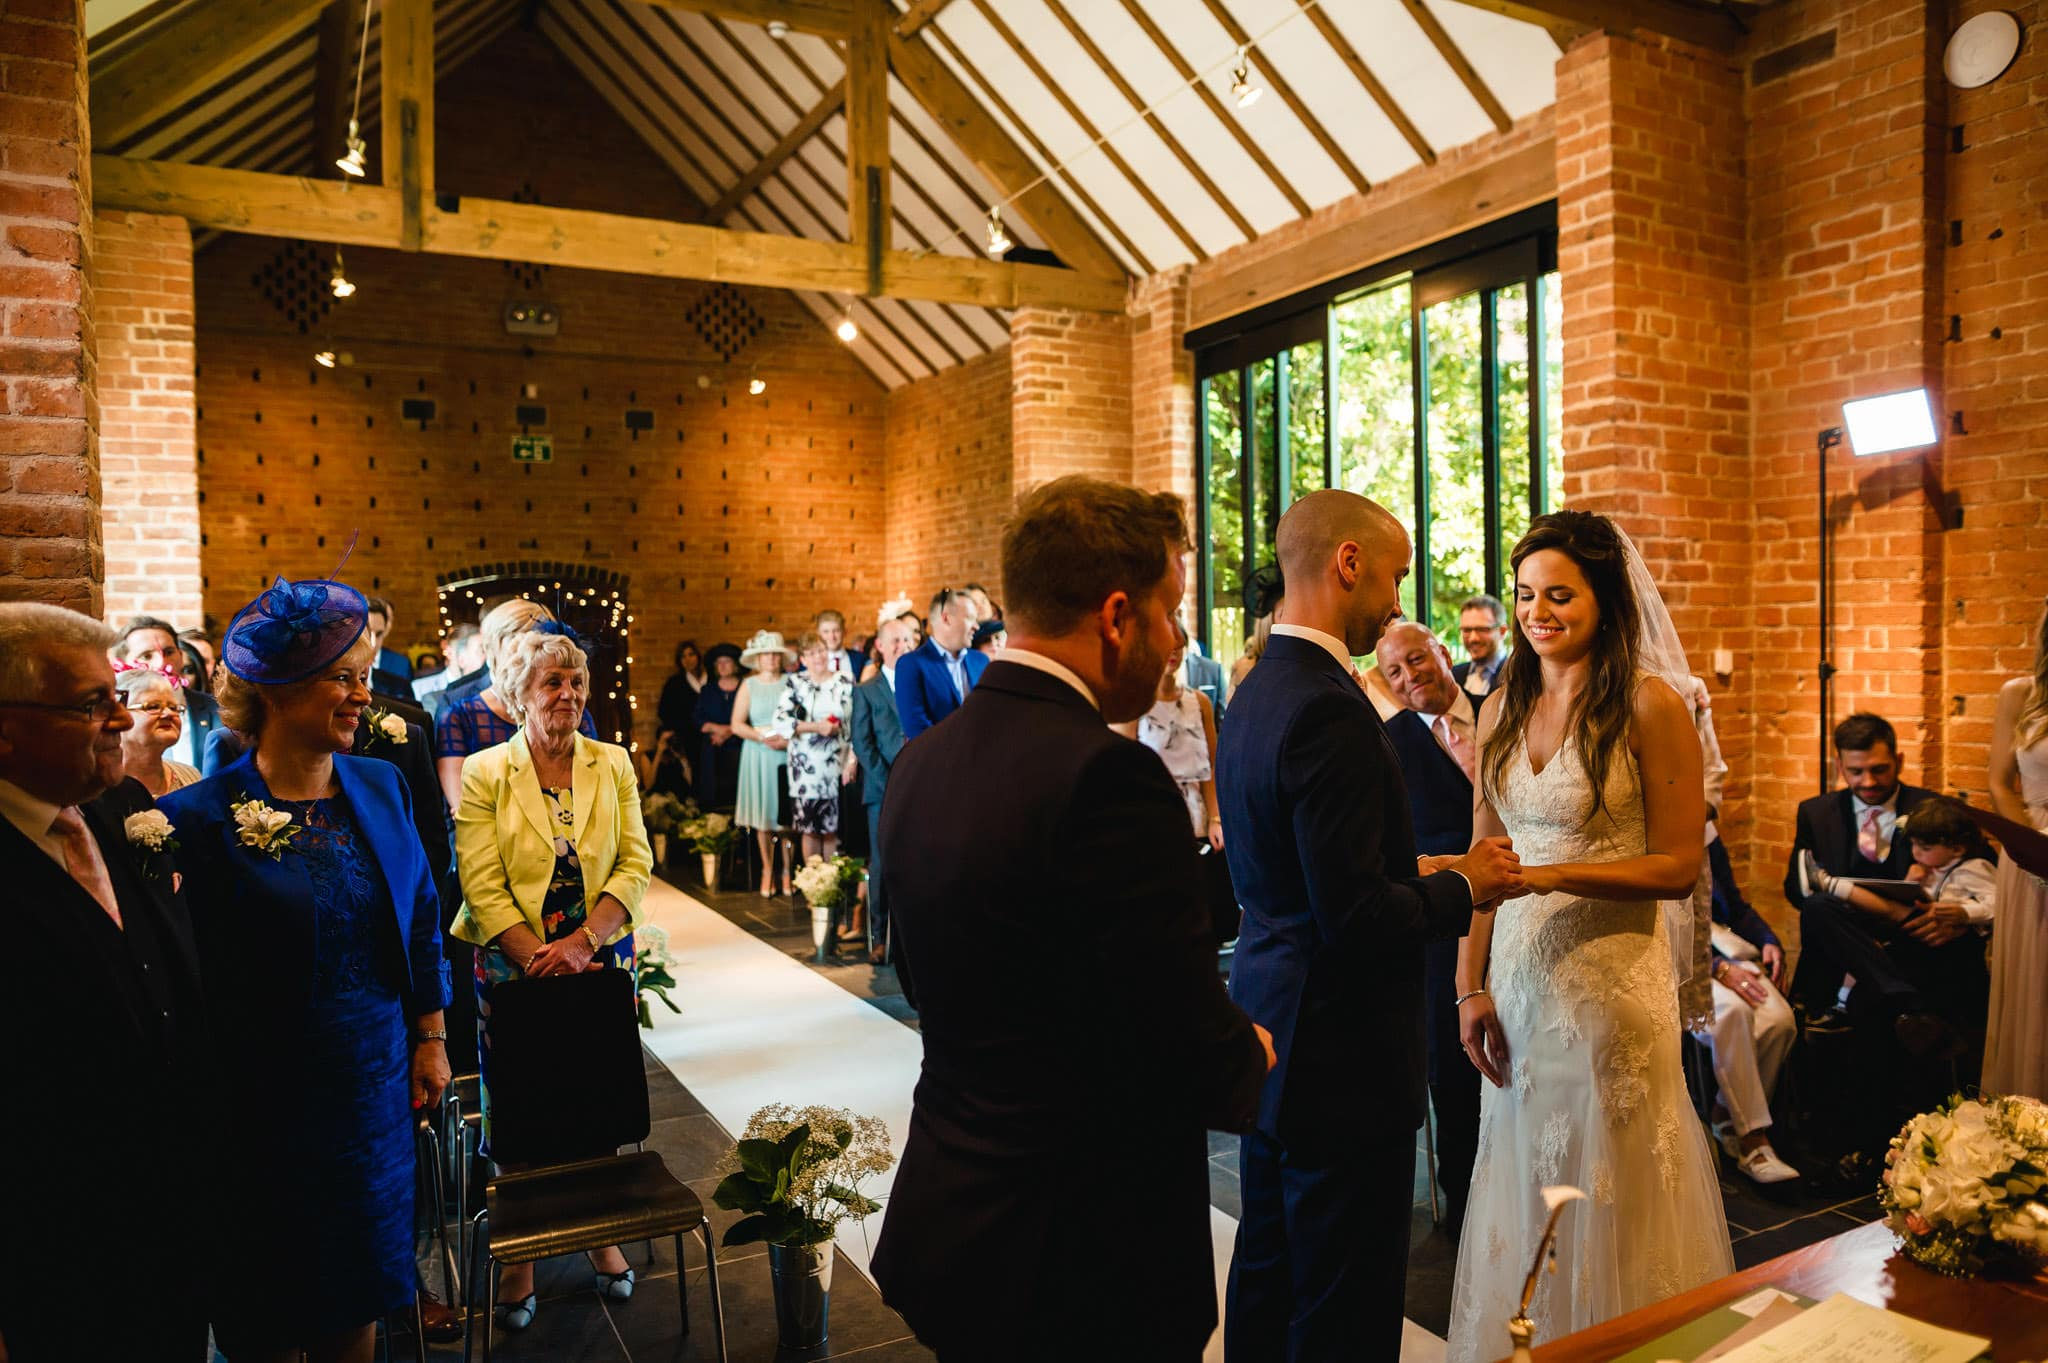 wedding at redhouse barn 75 - Wedding at Redhouse Barn in Stoke Prior, Worcestershire